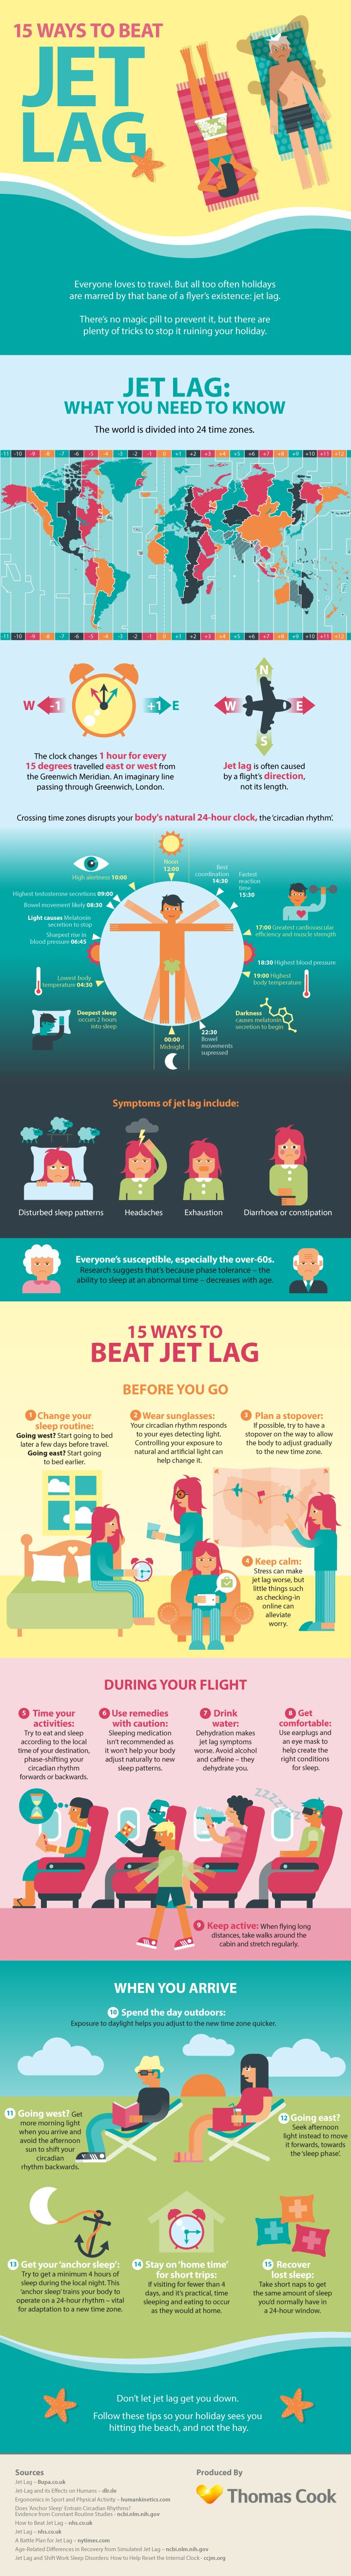 15 Notsoobvious Ways To Cure Jet Lag Once And For All